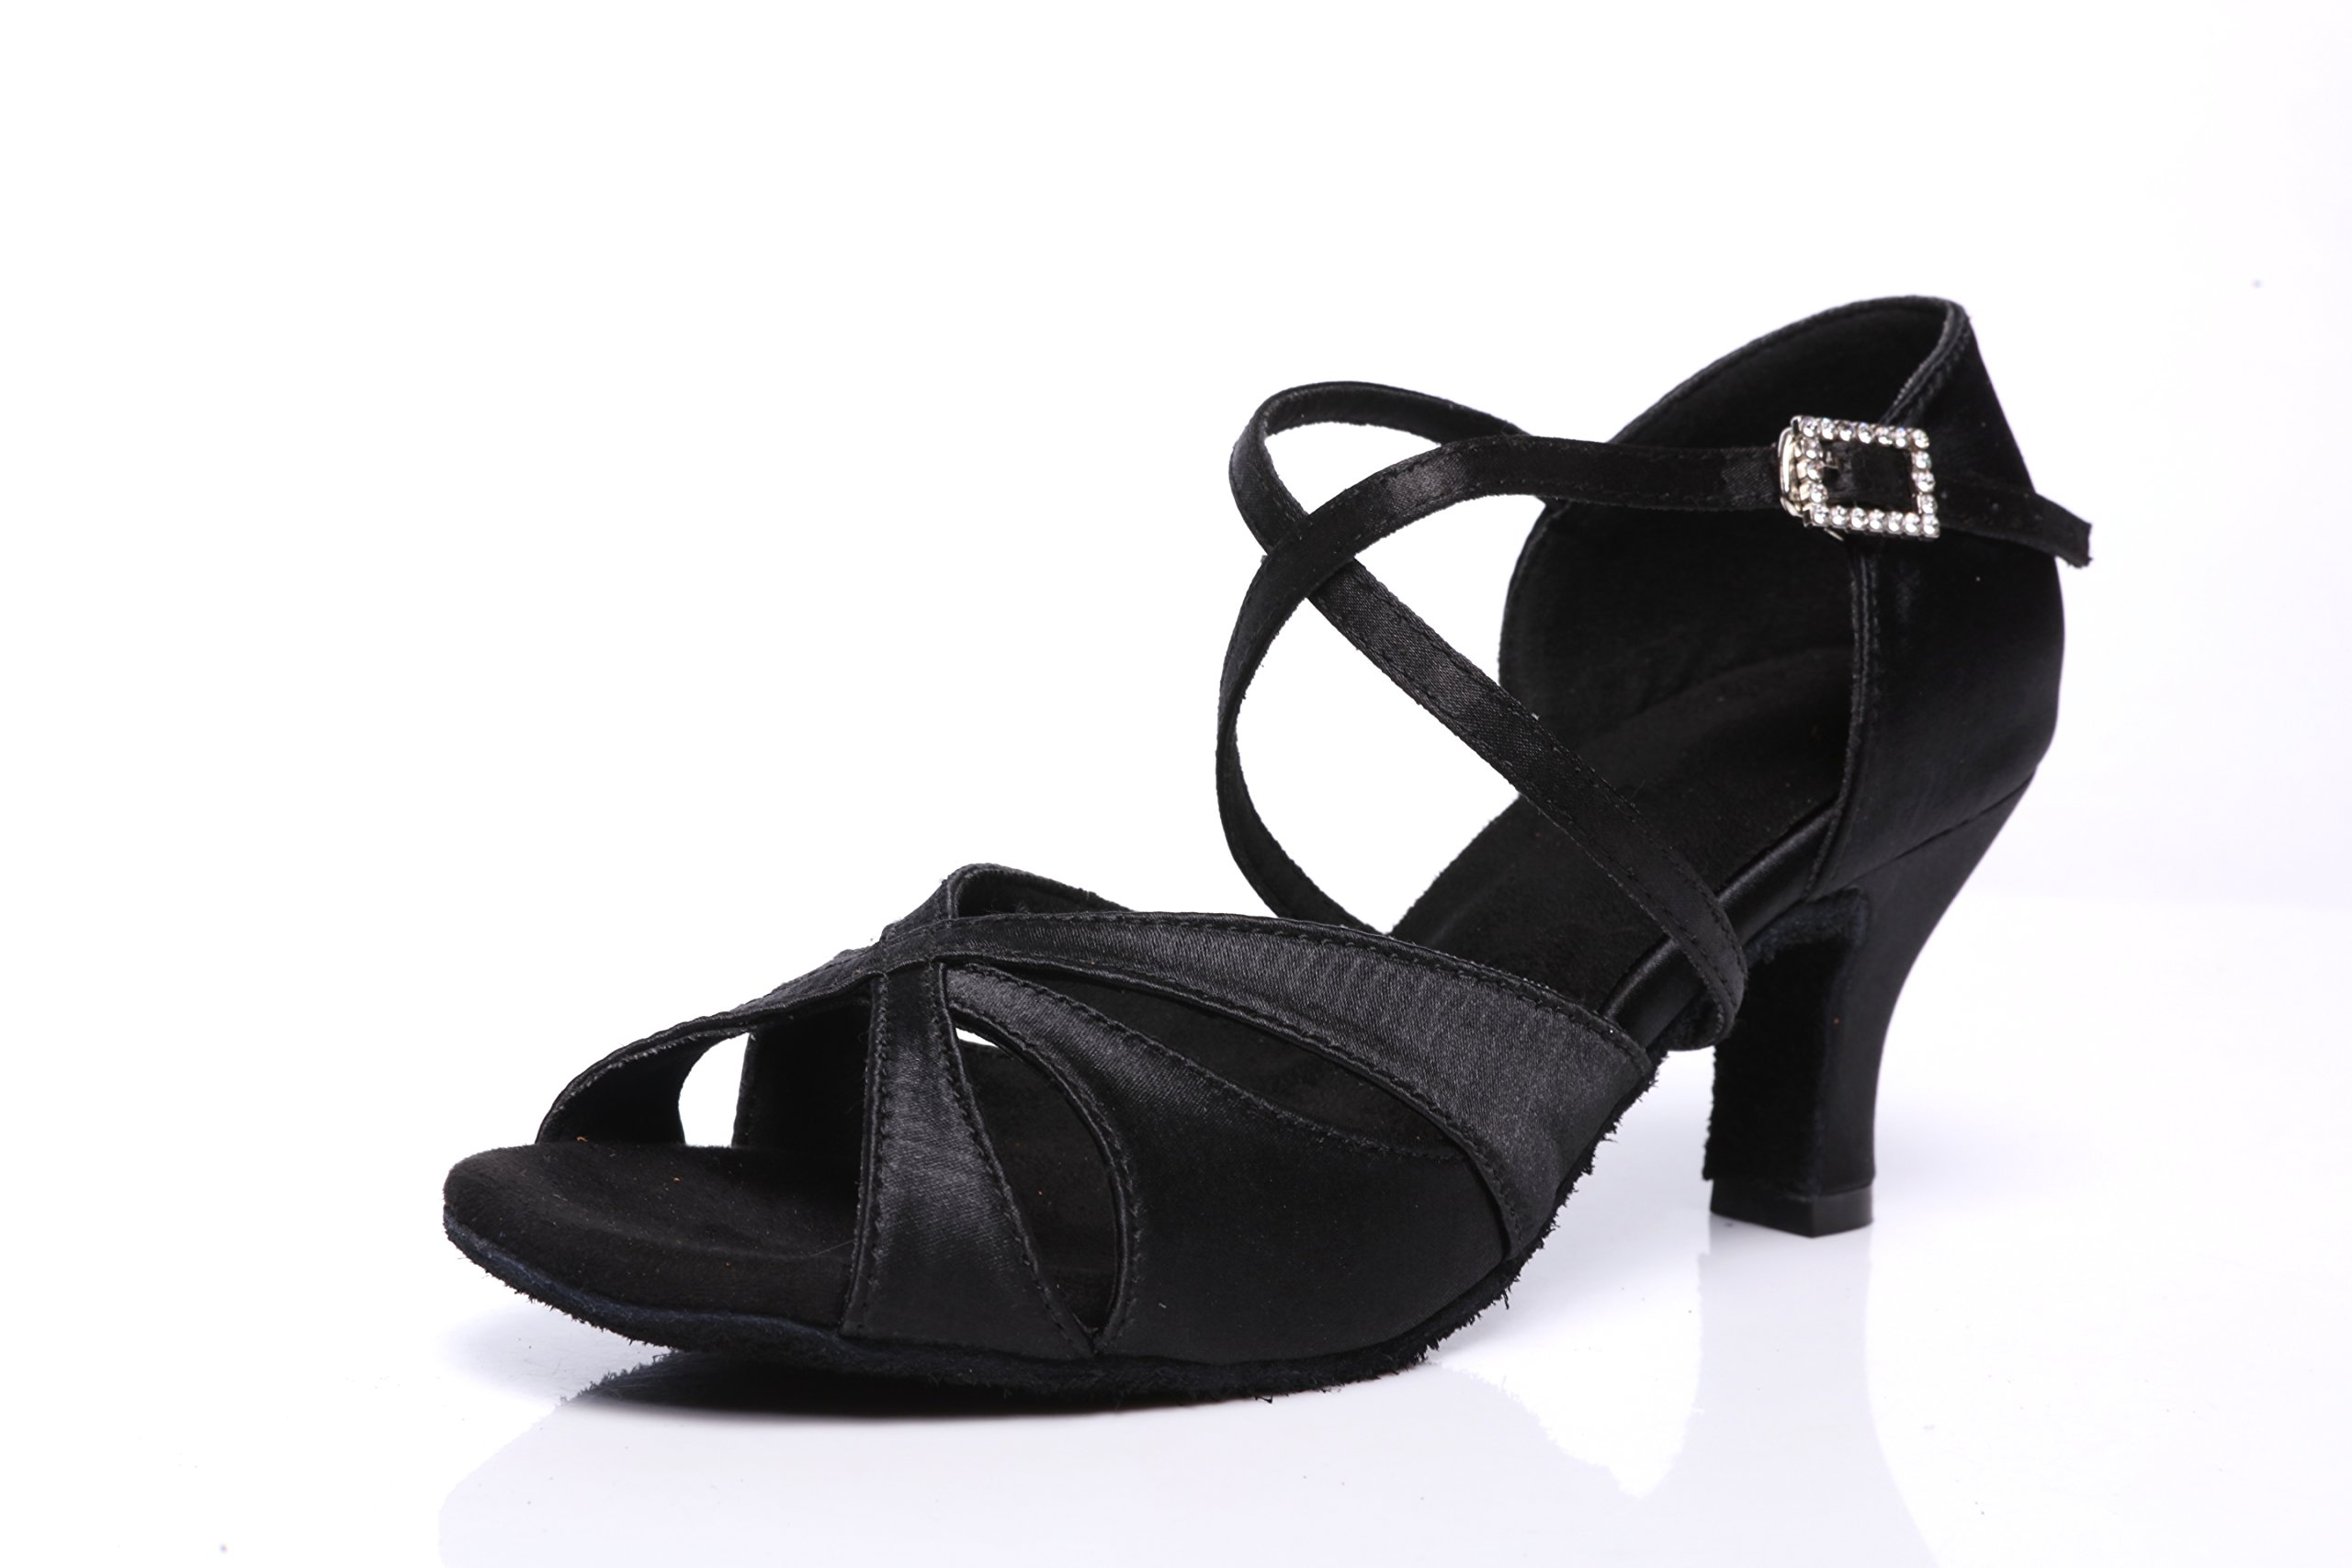 Women's Latin Dance Shoes Female's Ballroom Salsa Dance Shoes 2.3'' Hell(A-Style Black Size 6)